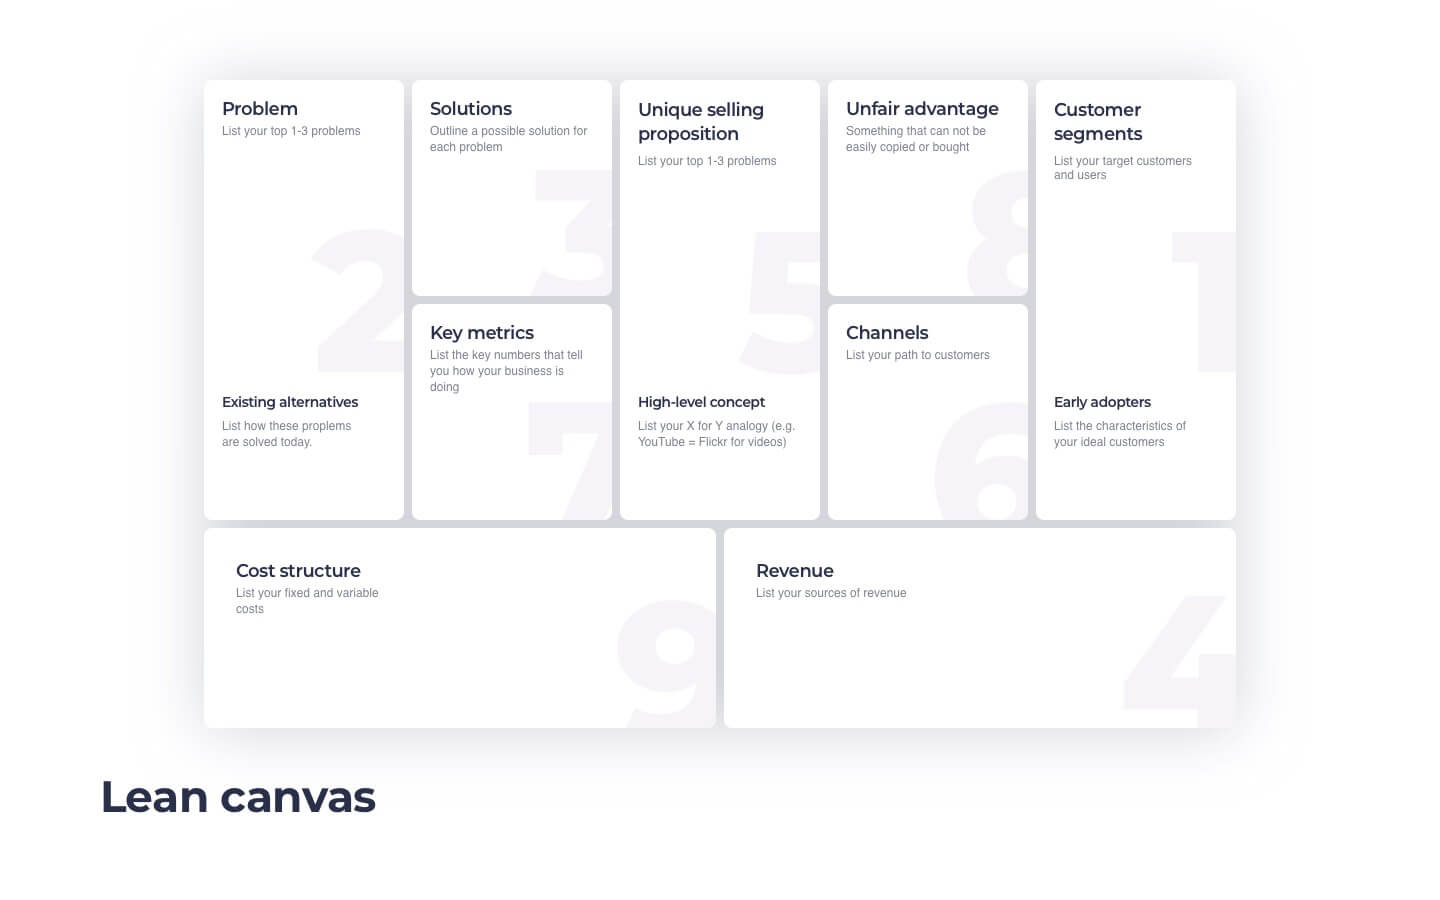 lean canvas image